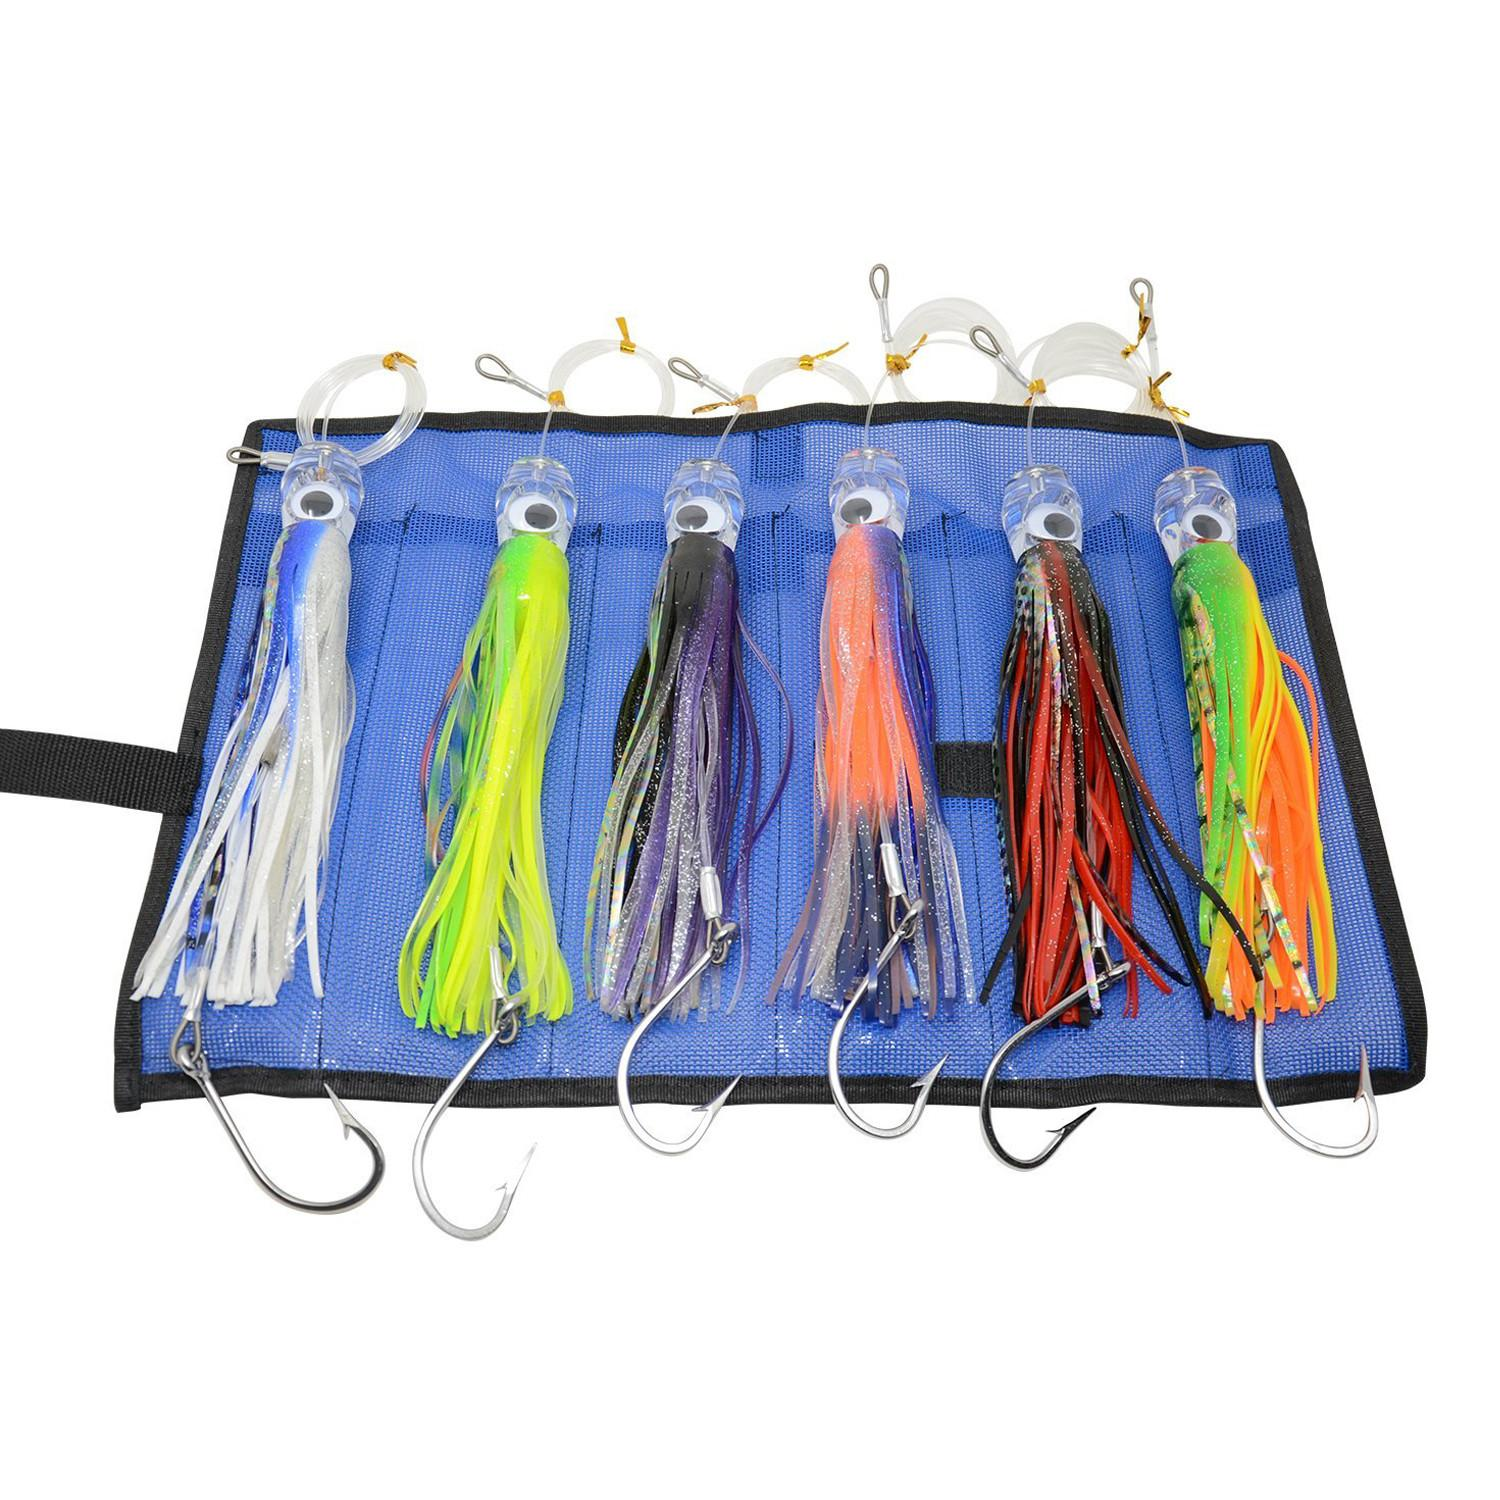 6 pcs 9 Inch Saltwater Fishing Lures Trolling Lures for Tuna Marlin Dolphin Mahi Wahoo and Durado, Included Big Game Fishing Y200829